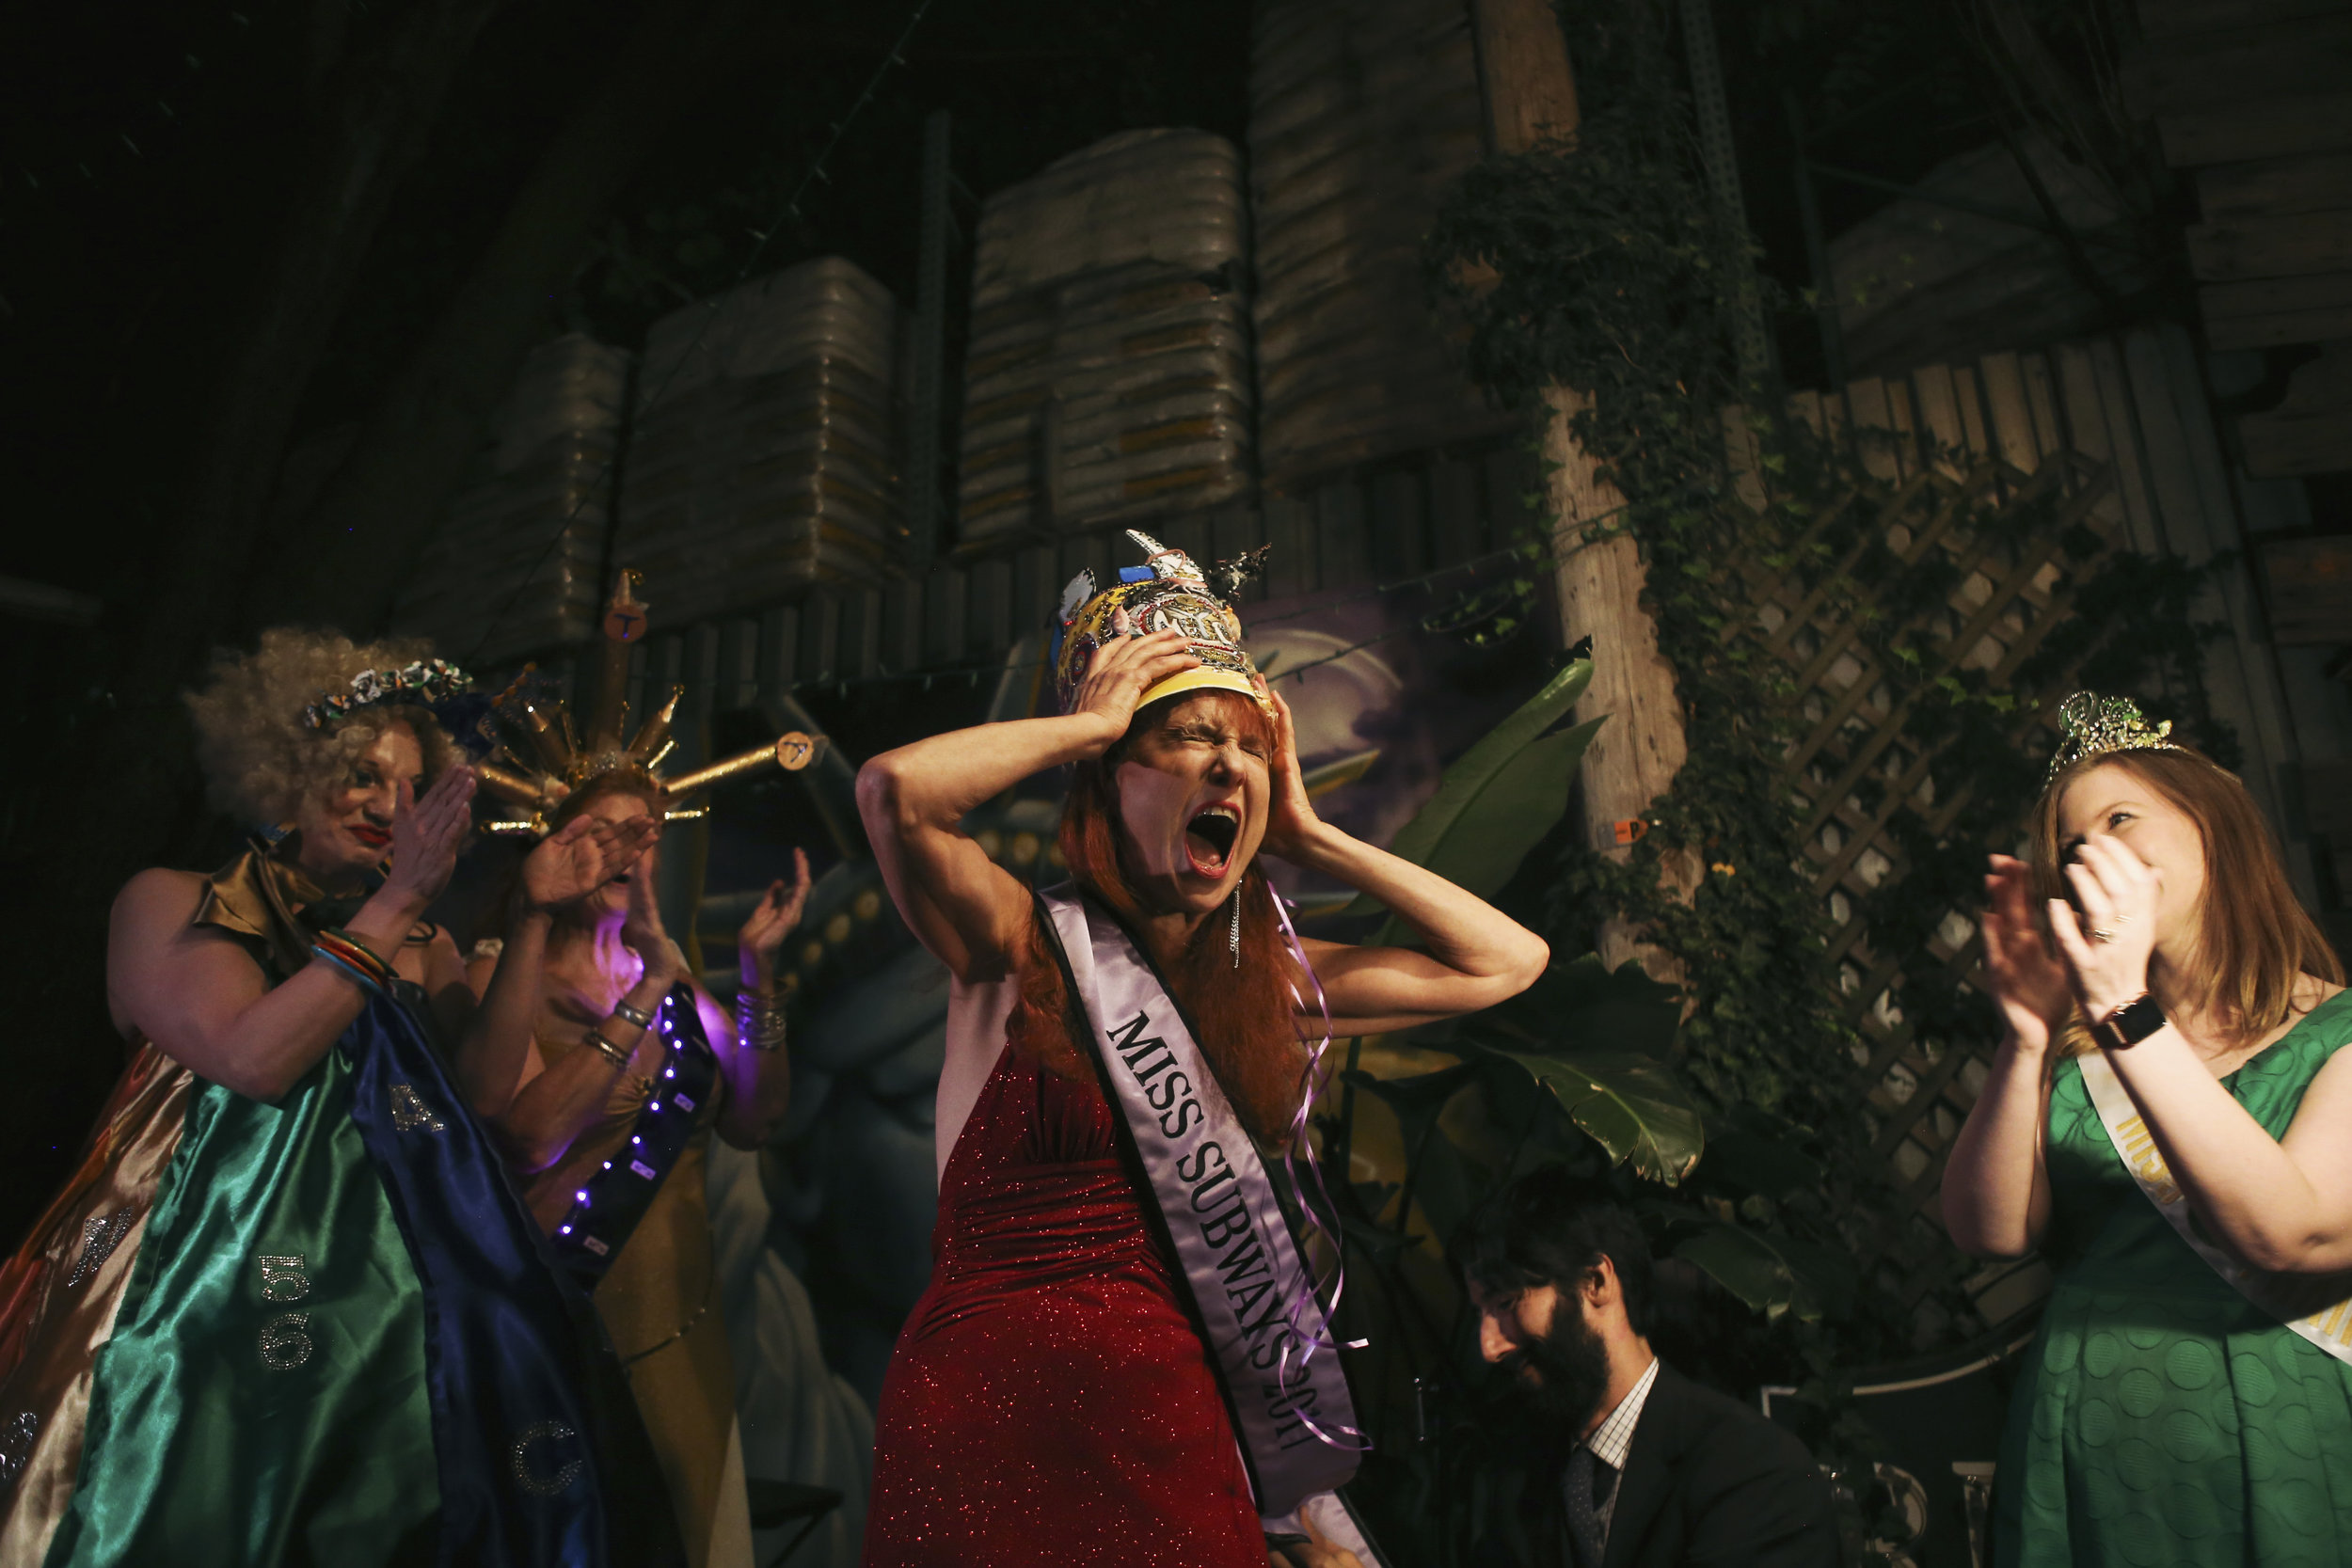 Lisa Levy reacts after being crowned Miss Subways 2017. The pageant was put on by the City Reliquary Museum in Williamsburg.